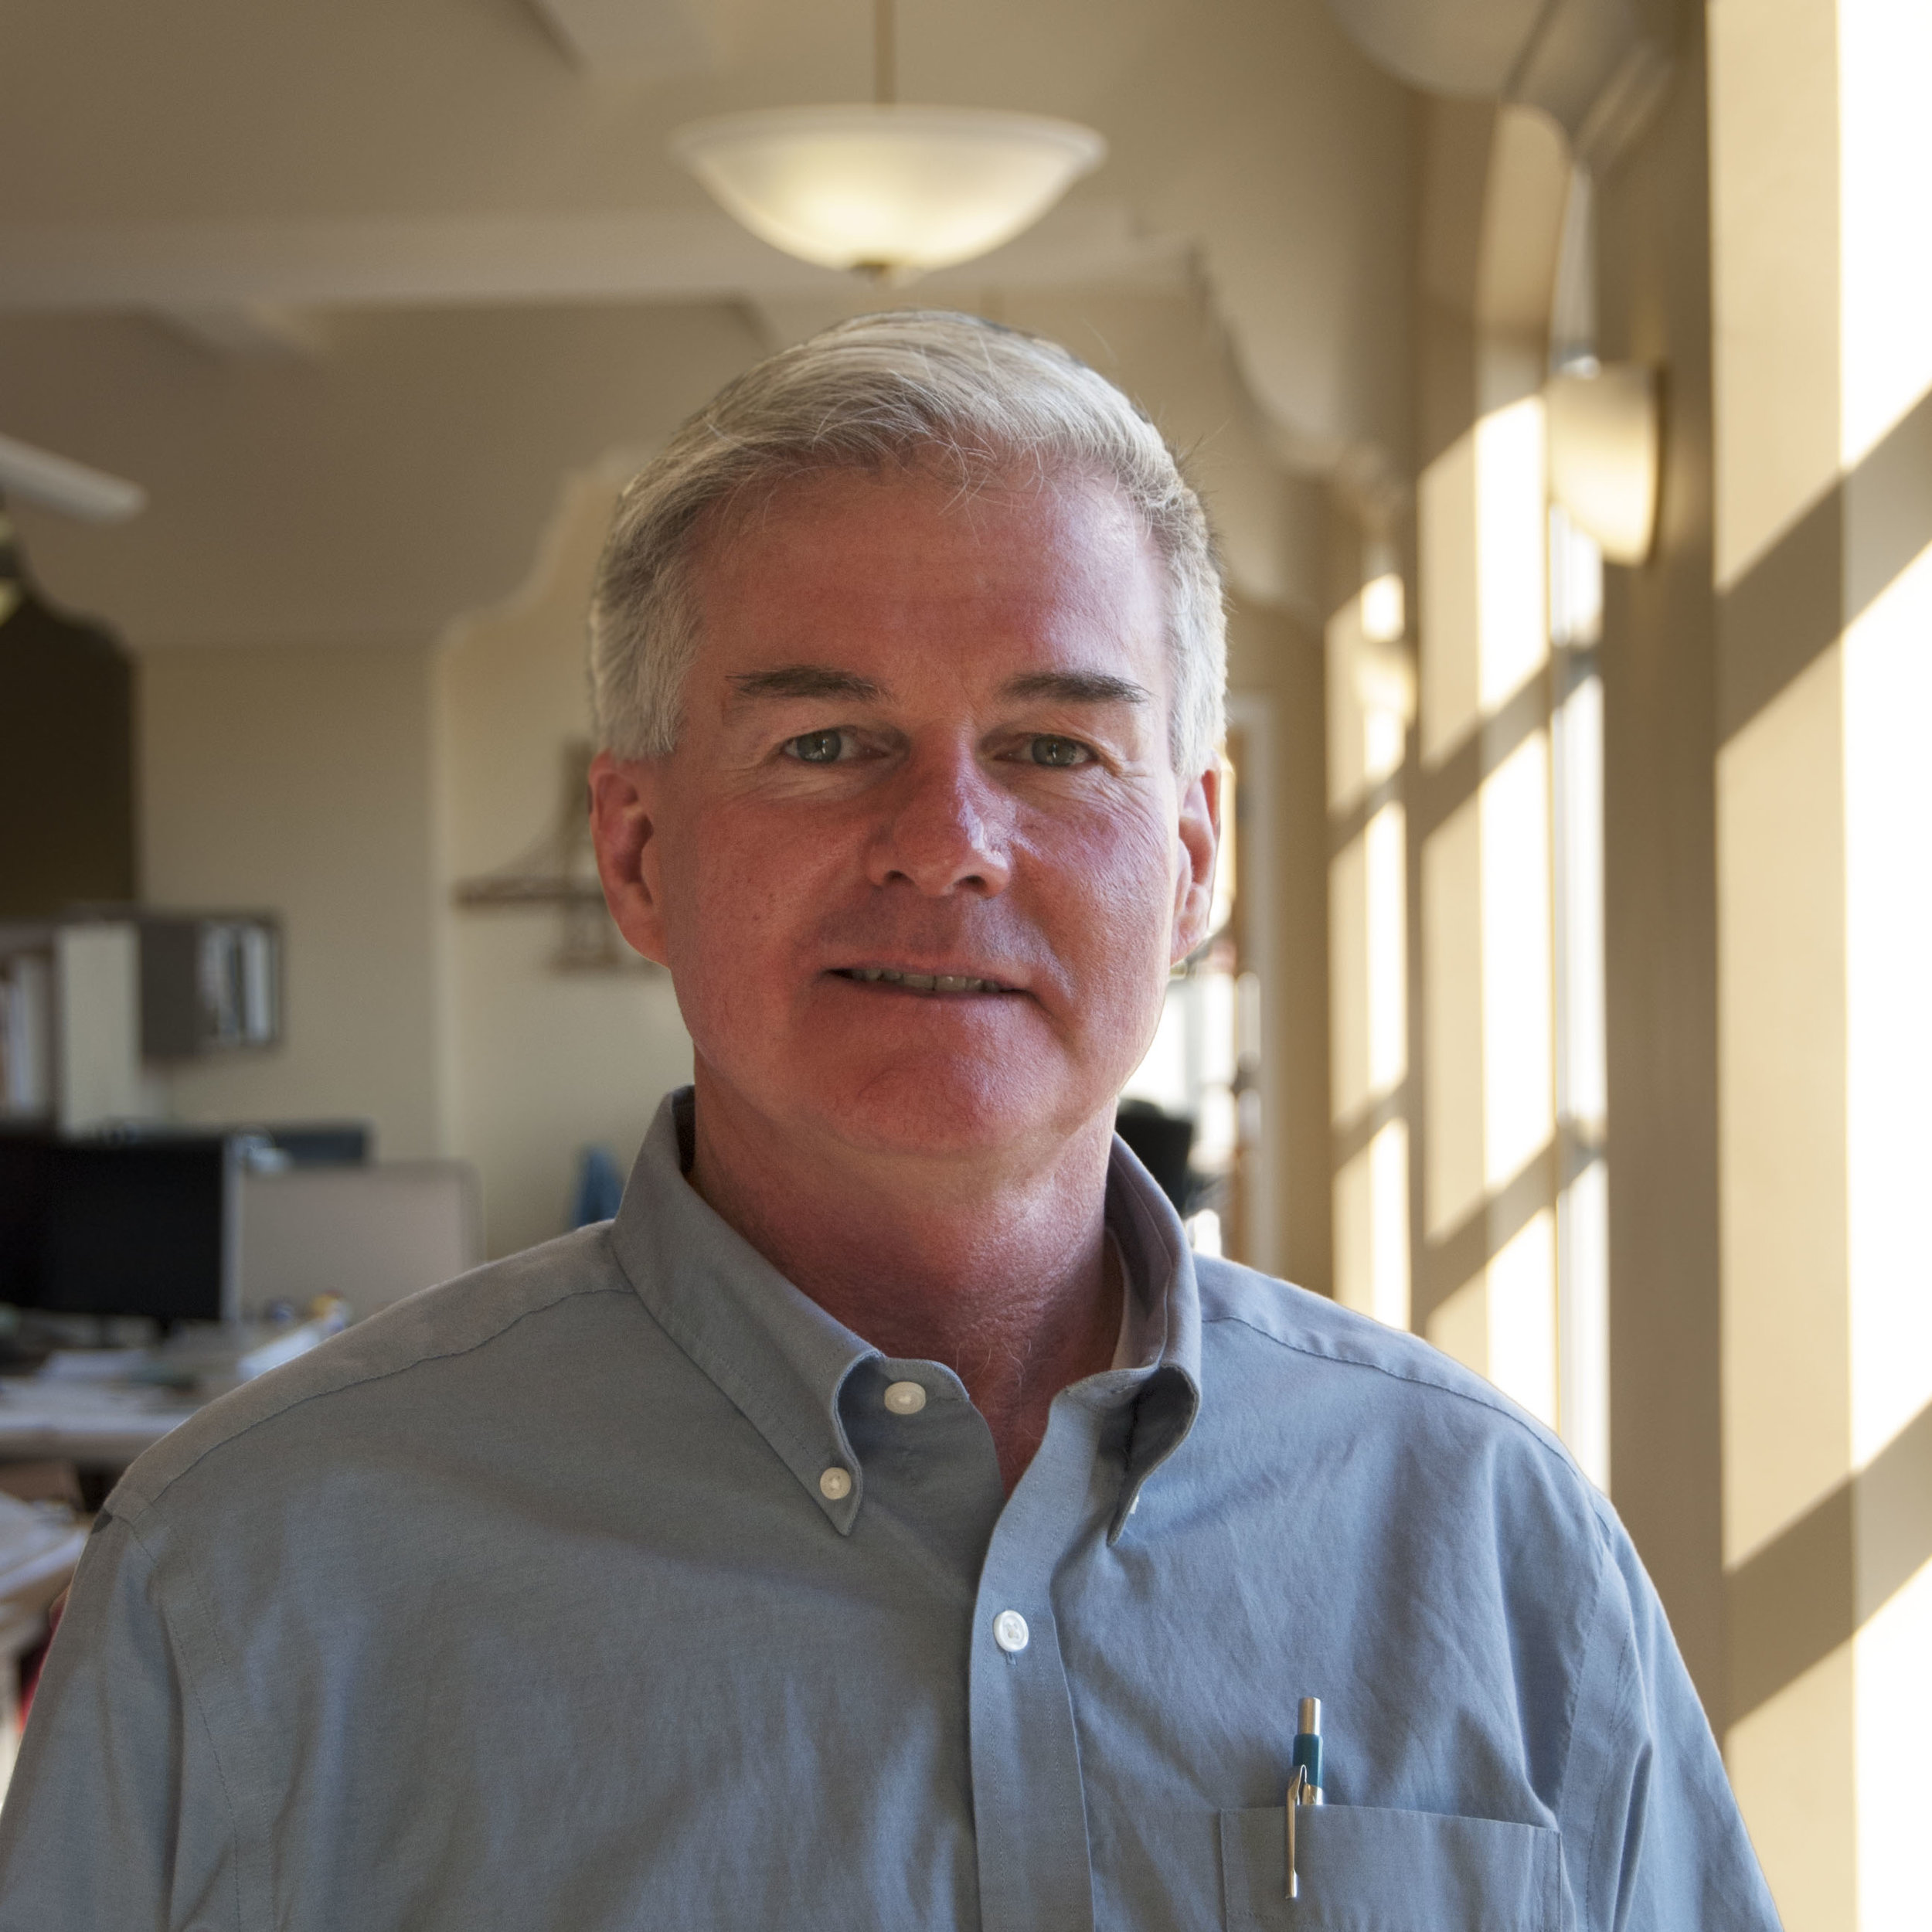 Brian Tully, P.E.  - Director of Construction Services Brian Tully has over thirty years experience in construction engineering and construction management on a wide range of project types and sizes. Brian is a Registered Professional Engineer with a Bachelor of Science Degree in Civil Engineering from Michigan State.  He has been in construction engineering and construction project management positions on projects for the Pennsylvania Department of Transportation, the Pennsylvania Turnpike Commission, the New York State Department of Transportation, the New Jersey Department of Transportation, the West Virginia Department of Transportation, and the Army Corp of Engineers, as well as a number of county, municipal and private owners.  Brian has experience managing construction projects for both owners and contractors.  Projects include bridge, roadway, commercial and residential site development, storm drainage, water and sanitary sewer, with contract values ranging from several thousand to over $25 million.